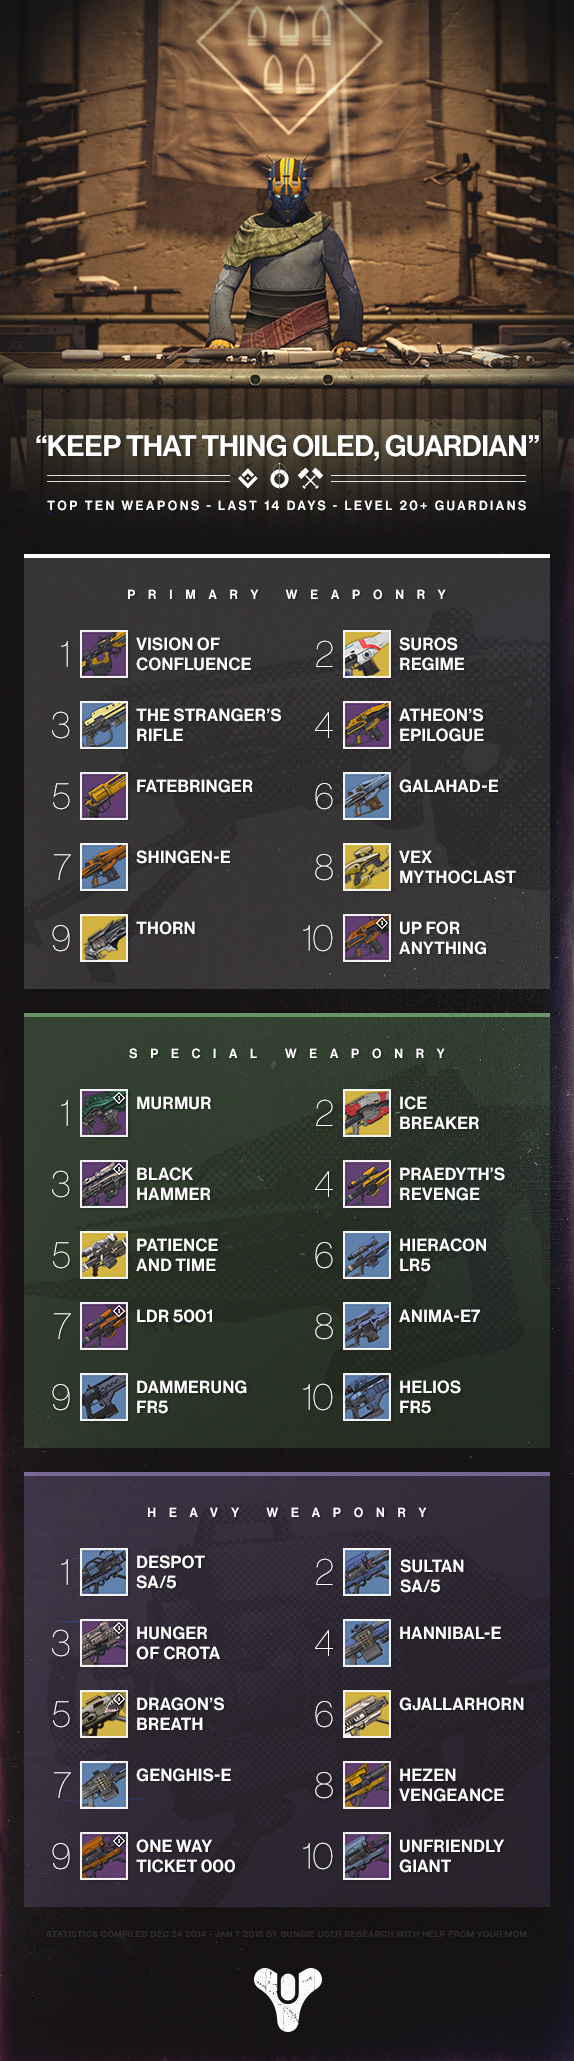 weapons_infographic